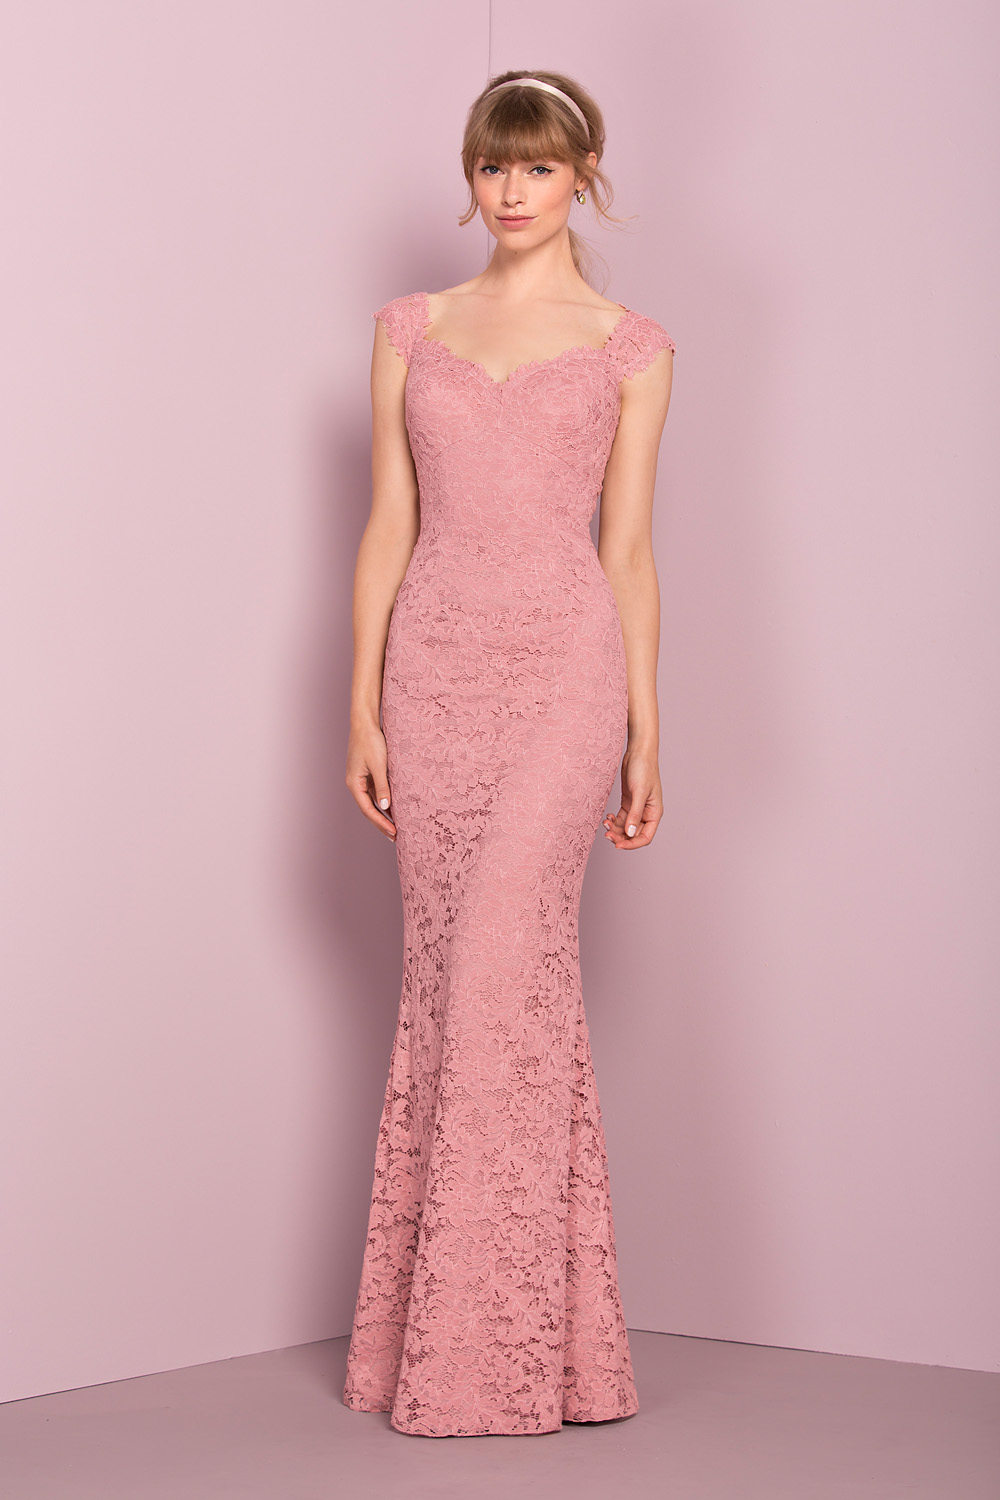 Kelsey Rose Bridesmaid Dresses Romantique Bridal